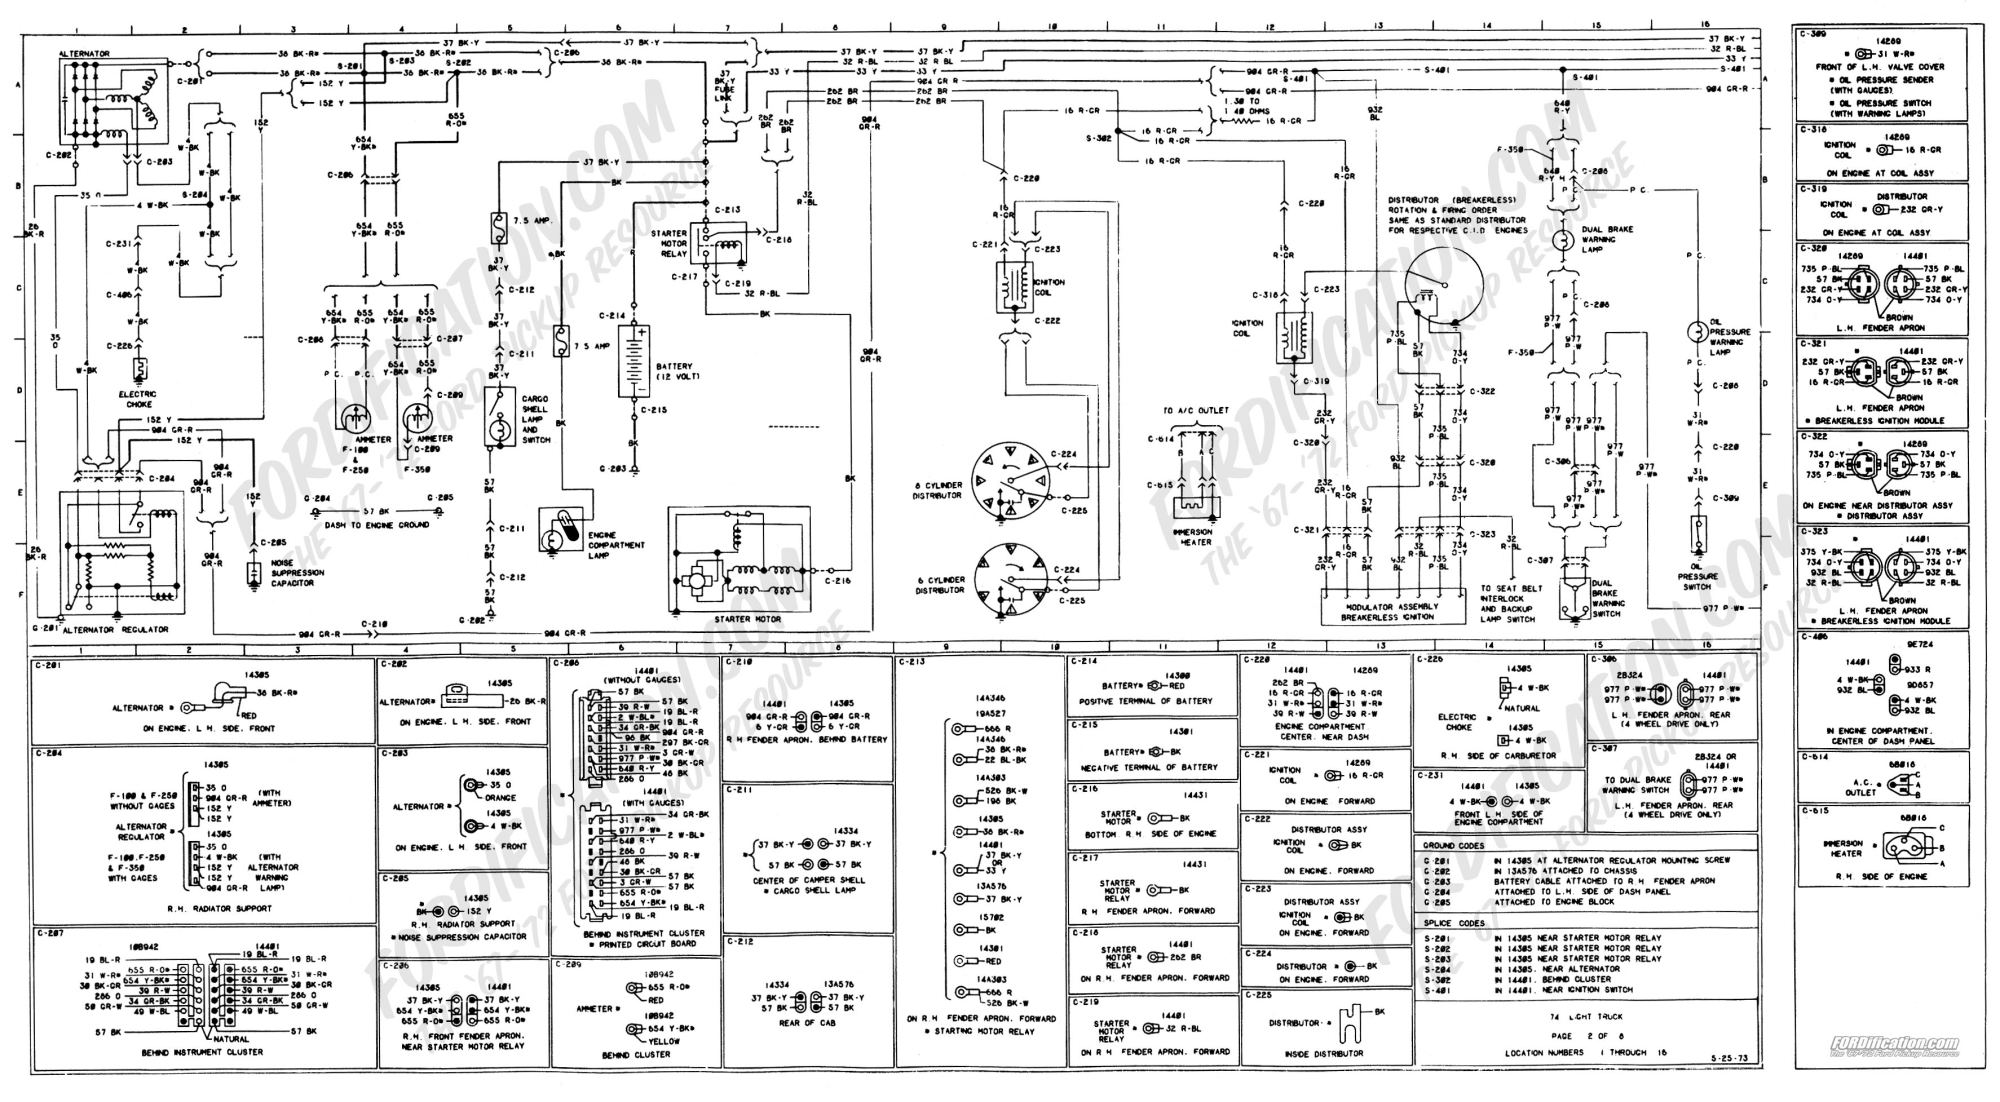 hight resolution of 1973 1979 ford truck wiring diagrams schematics fordification net rh fordification net 1975 ford f 250 wiring diagram 1973 ford truck wiring diagram